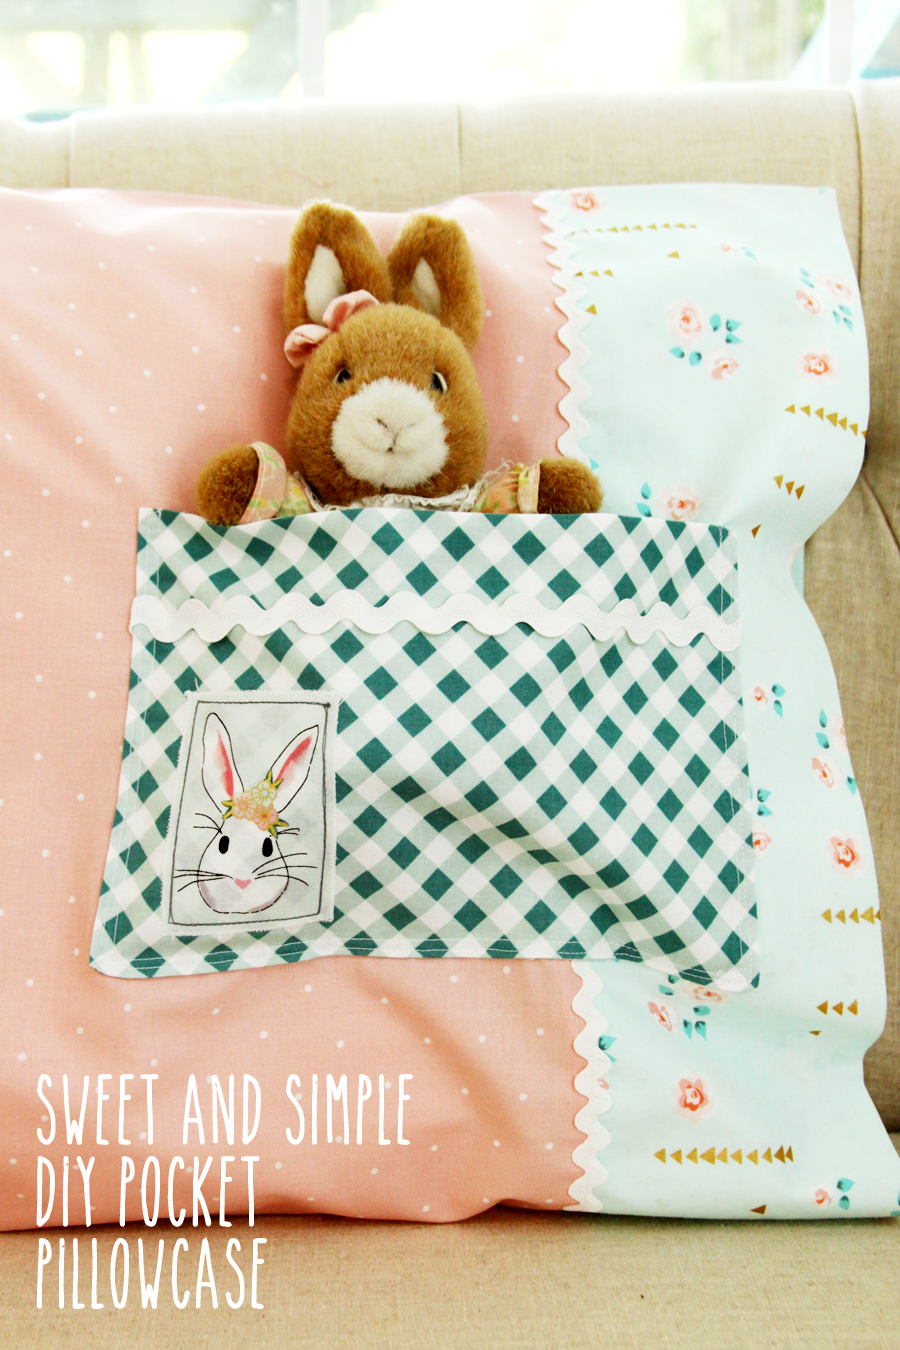 Sweet And Simple DIY Pocket Pillowcase from Flamingo Toes